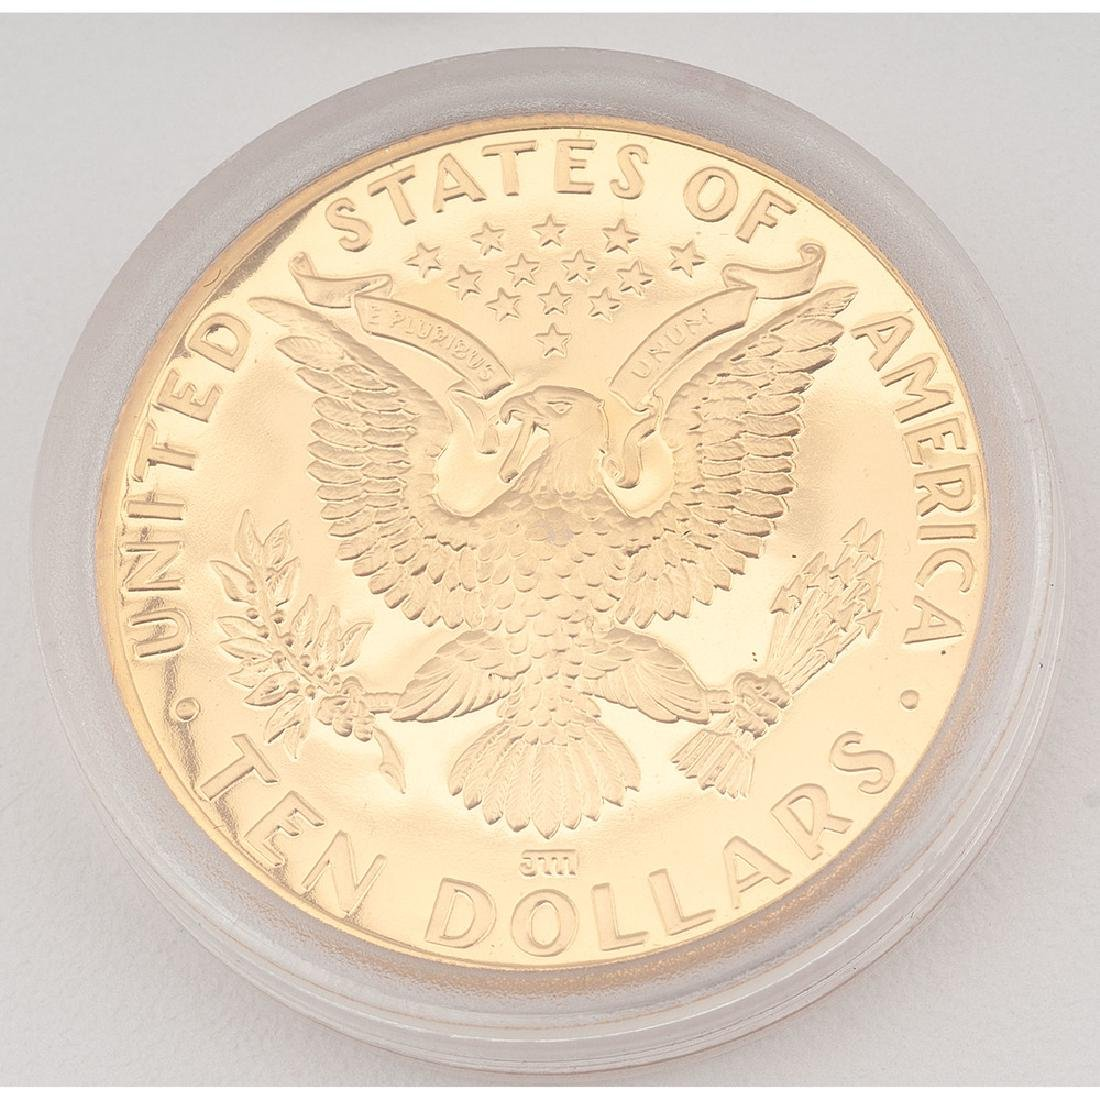 United States Los Angeles Olympiad Commemorative Gold - 2